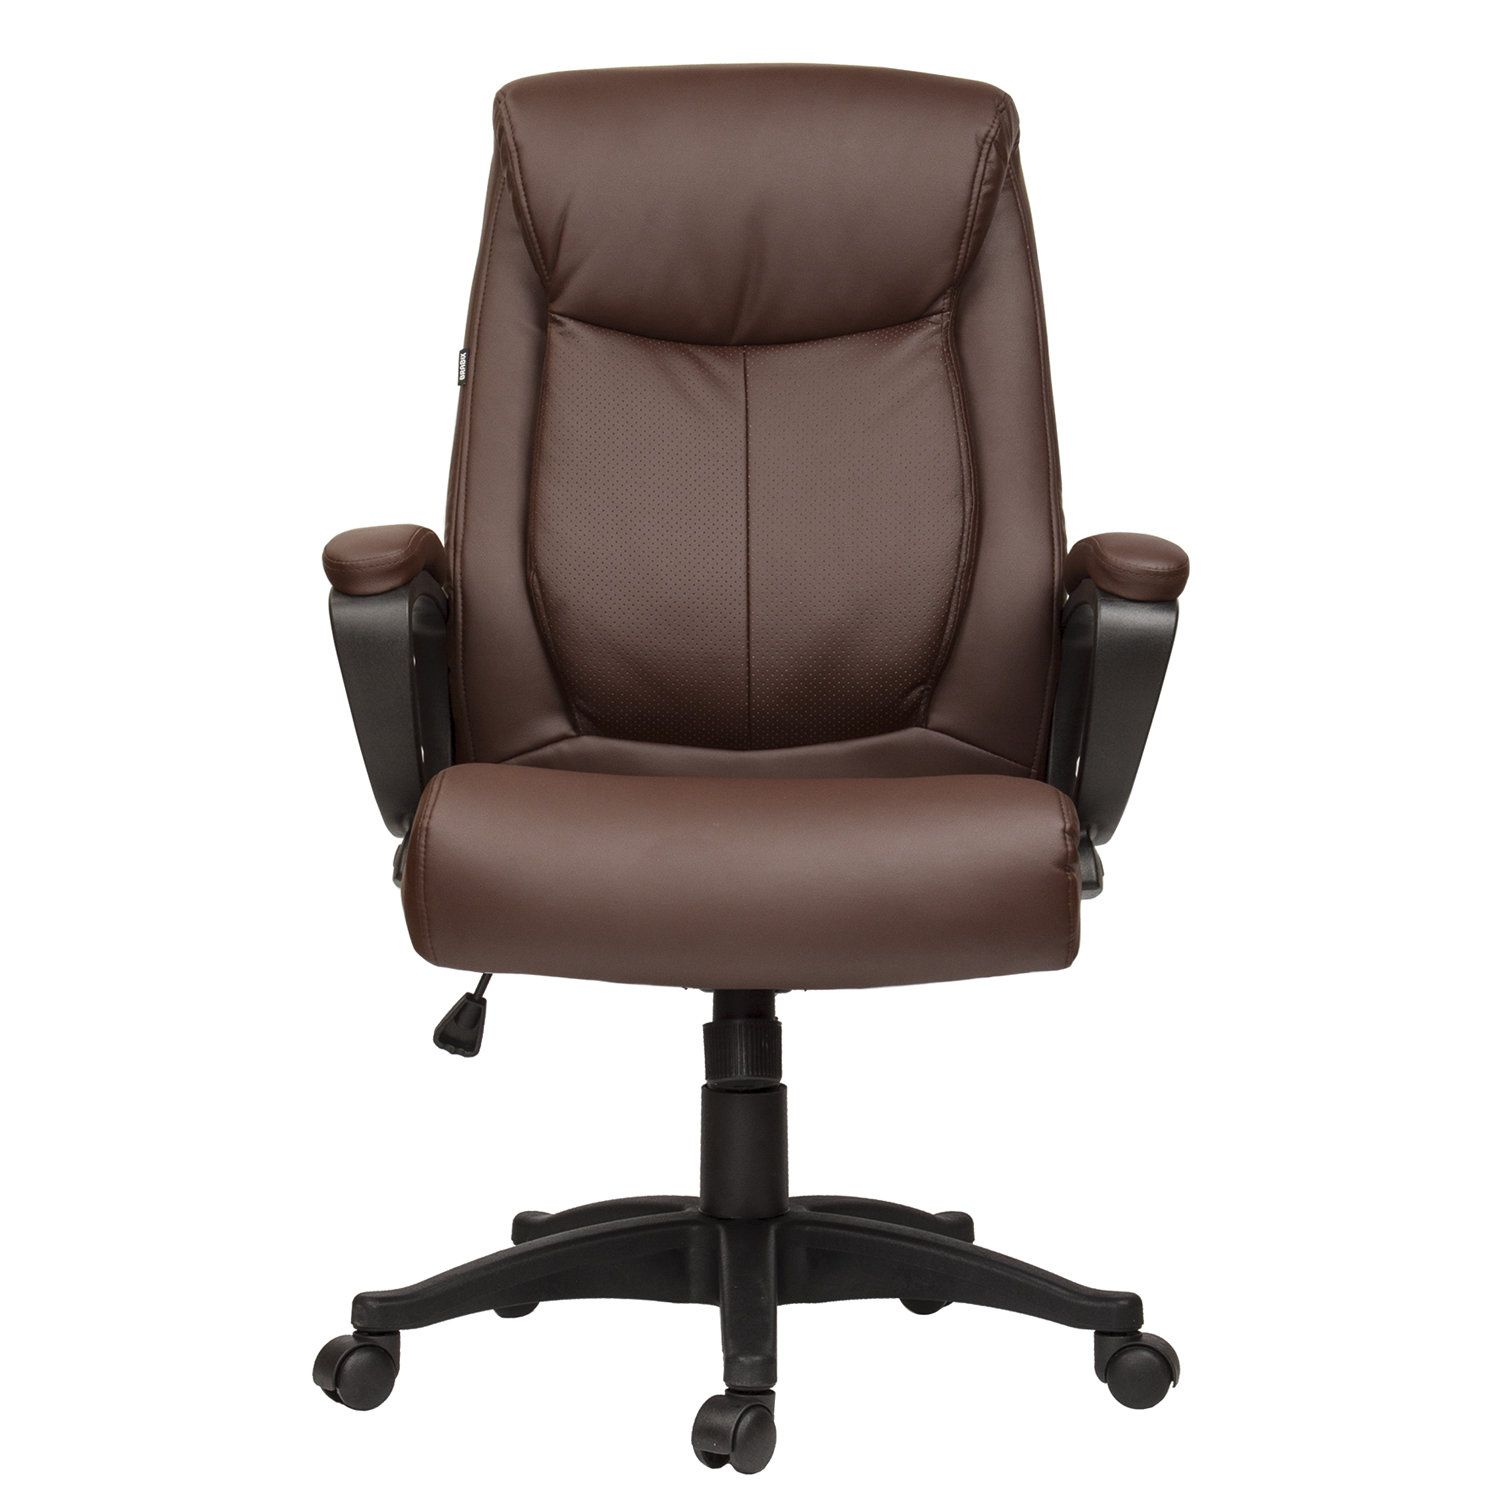 """Office chair BRABIX """"Enter EX-511"""", eco-leather, brown"""